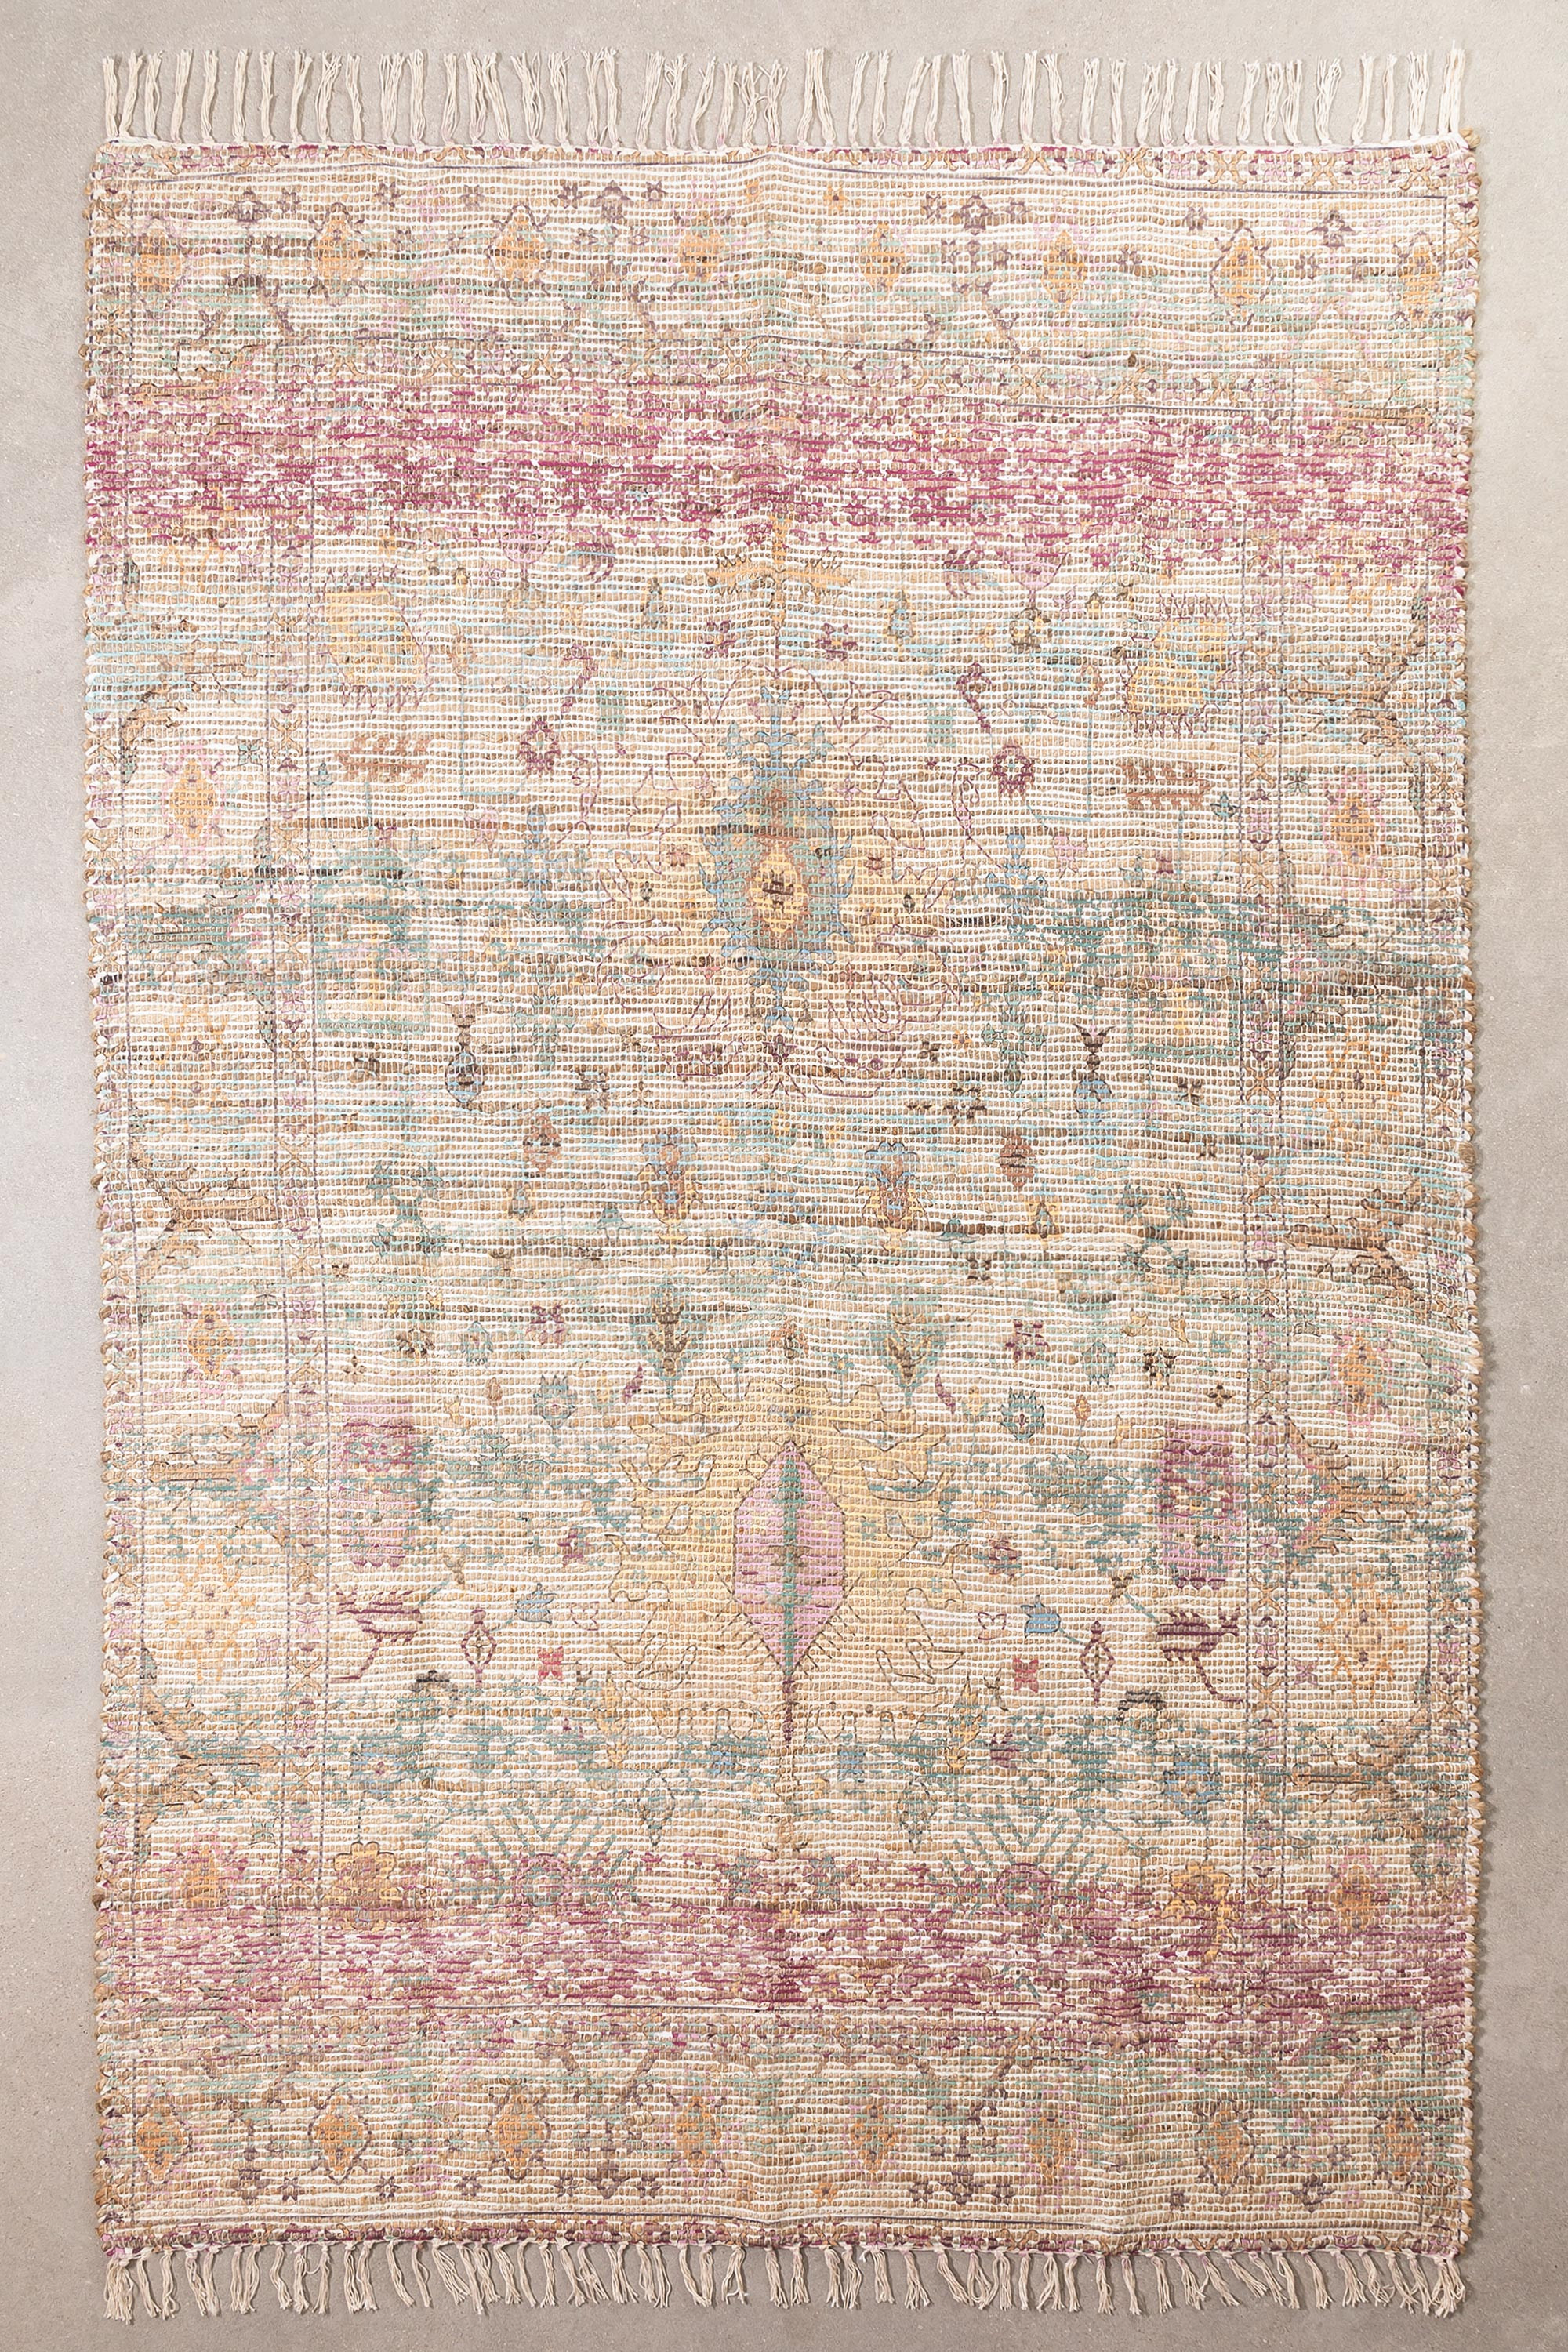 Jute and Fabric Rug (284x174 cm) Demir, gallery image 1